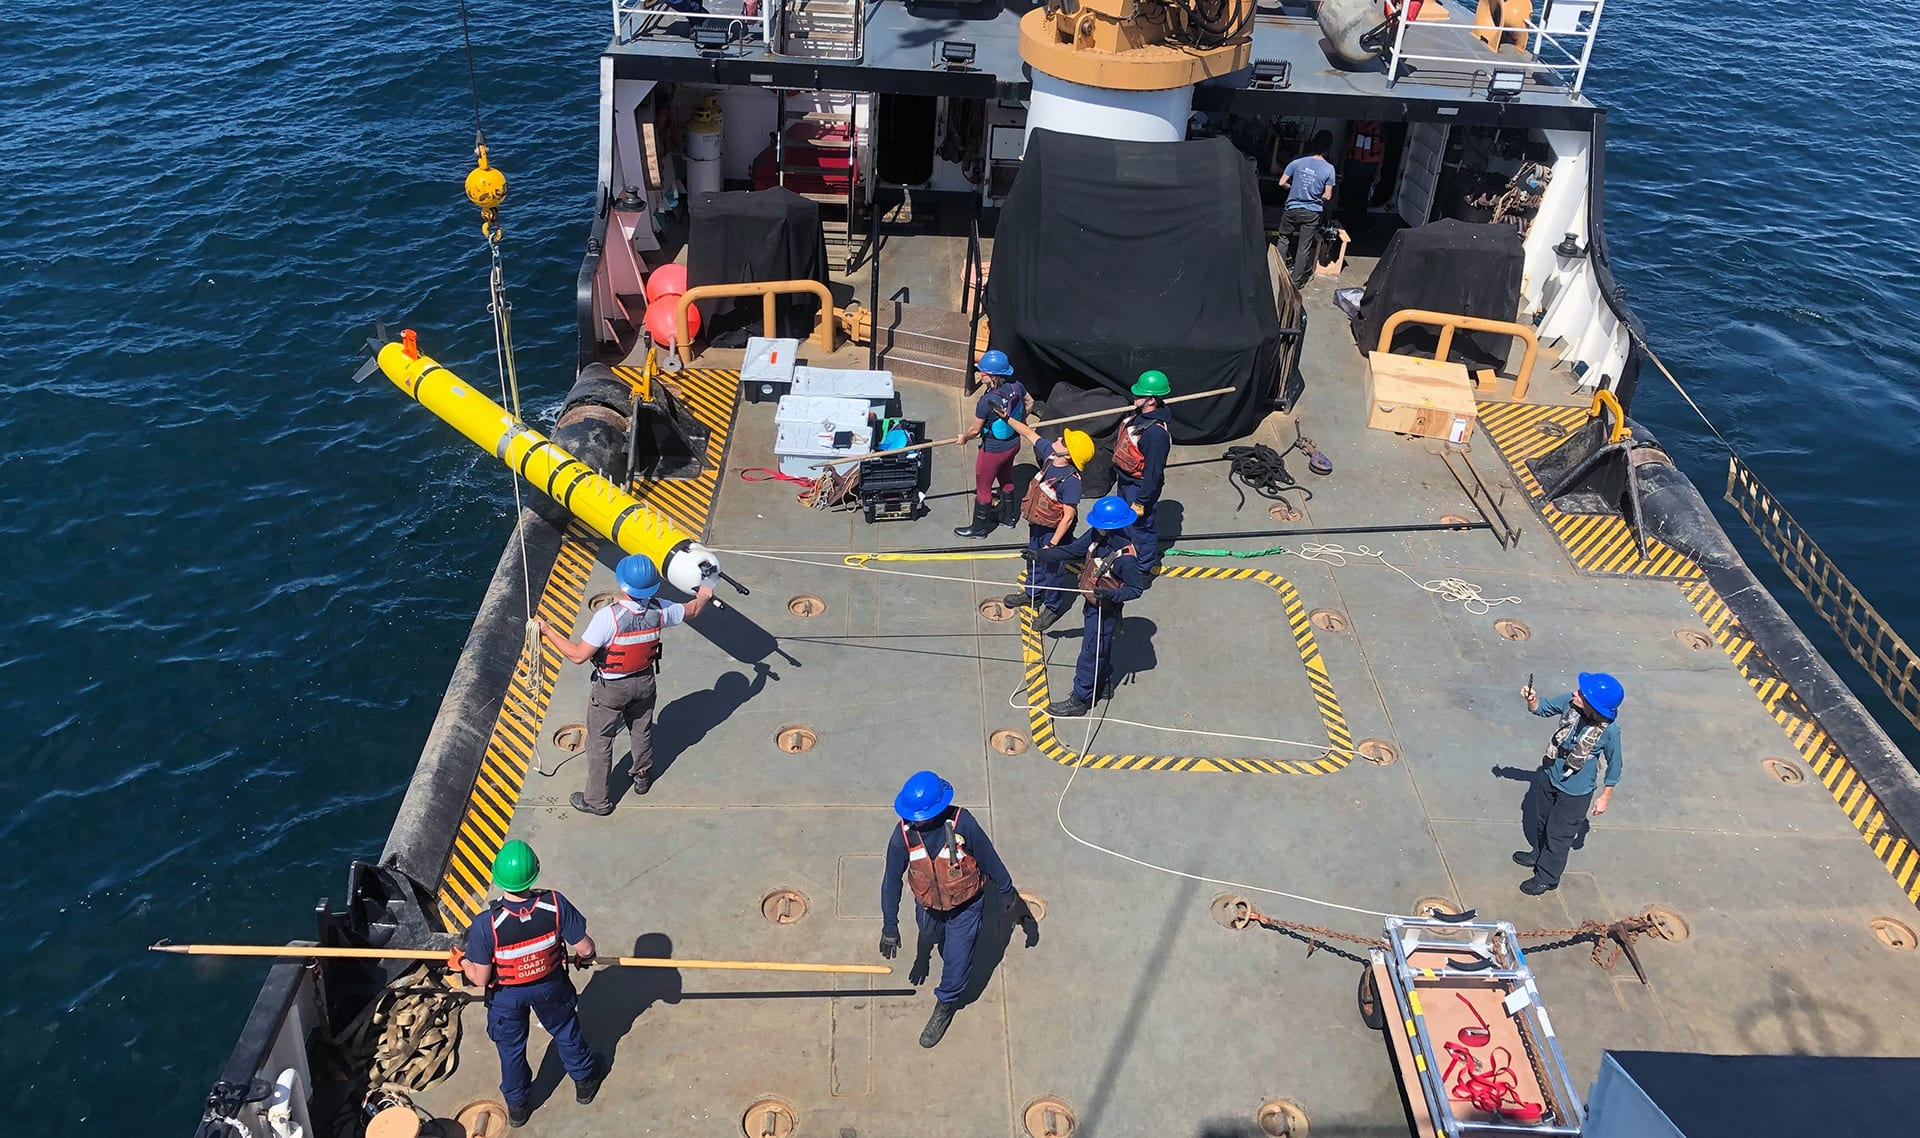 An autonomous underwater vehicle (AUV) is launched from the U.S. Coast Guard Cutter (USCGC) George Cobb in Santa Barbara to test the vehicle's oil spill detection capabilities for rapid response during a real-world maritime oil spill. (Photo by Amy Kukulya, Woods Hole Oceanographic Institution)